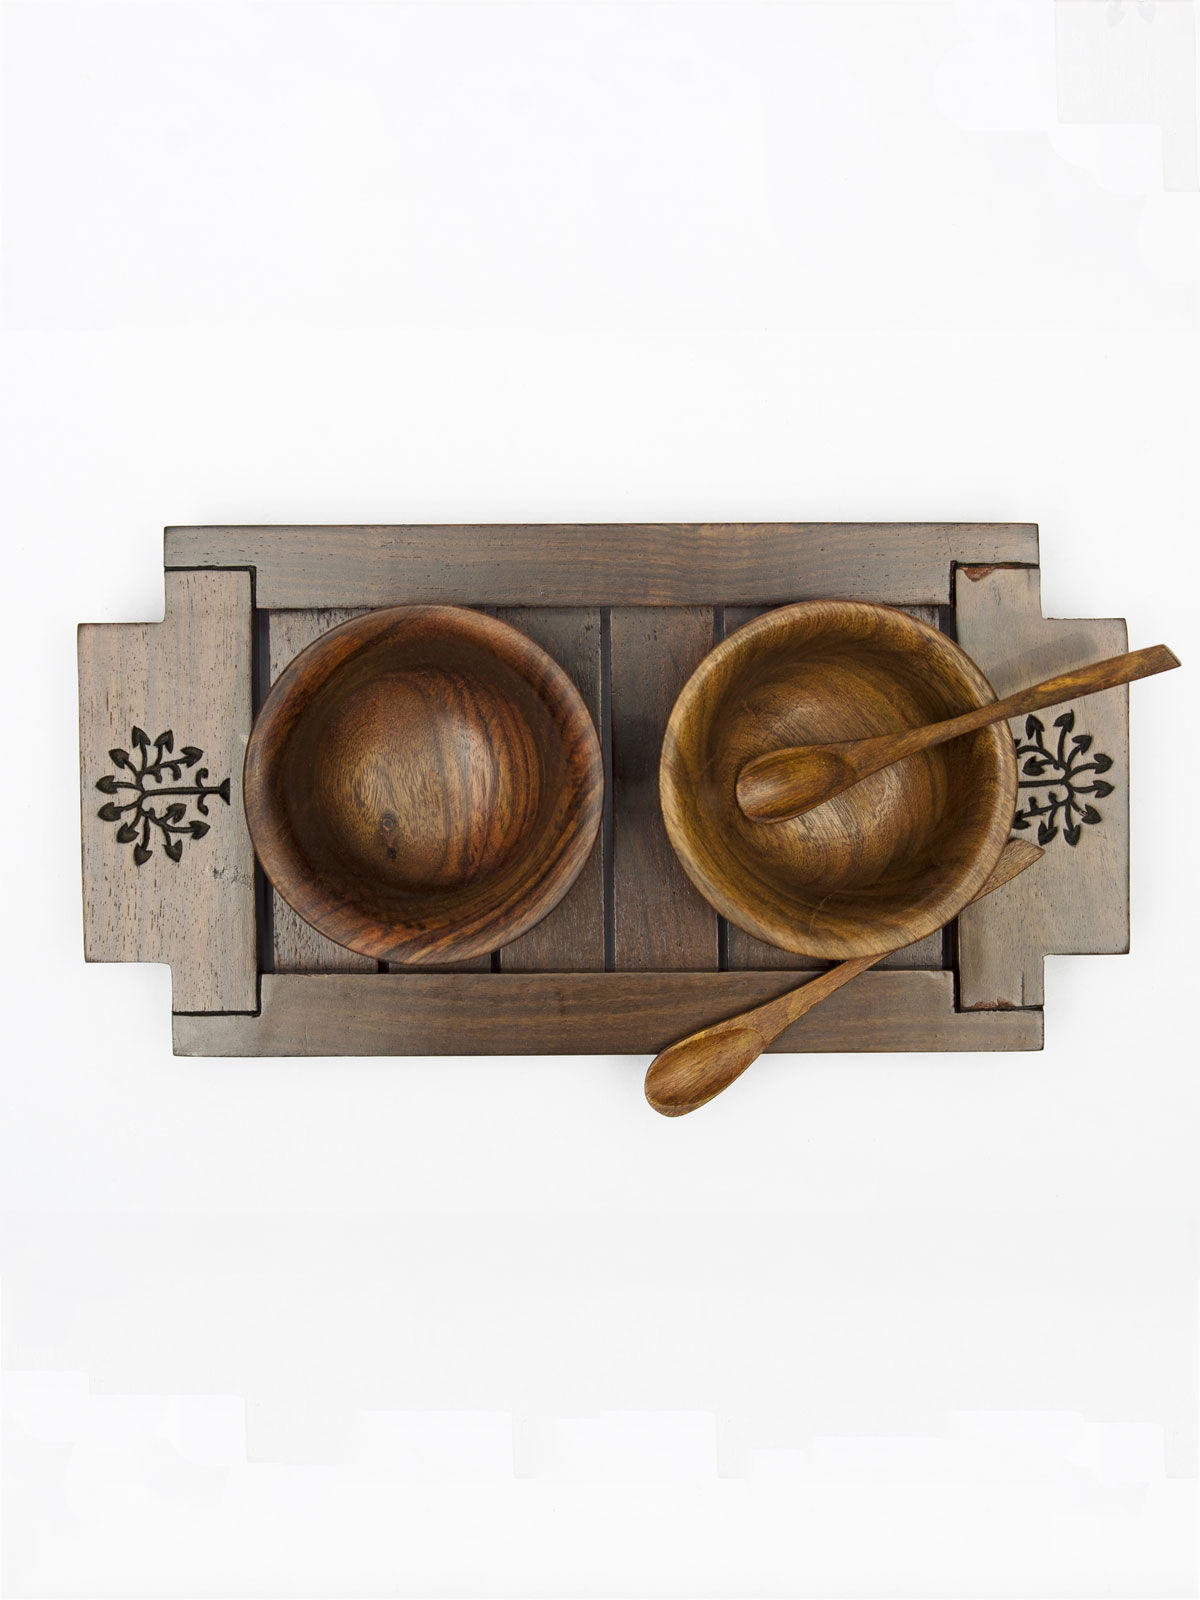 Carved Tray with bowls